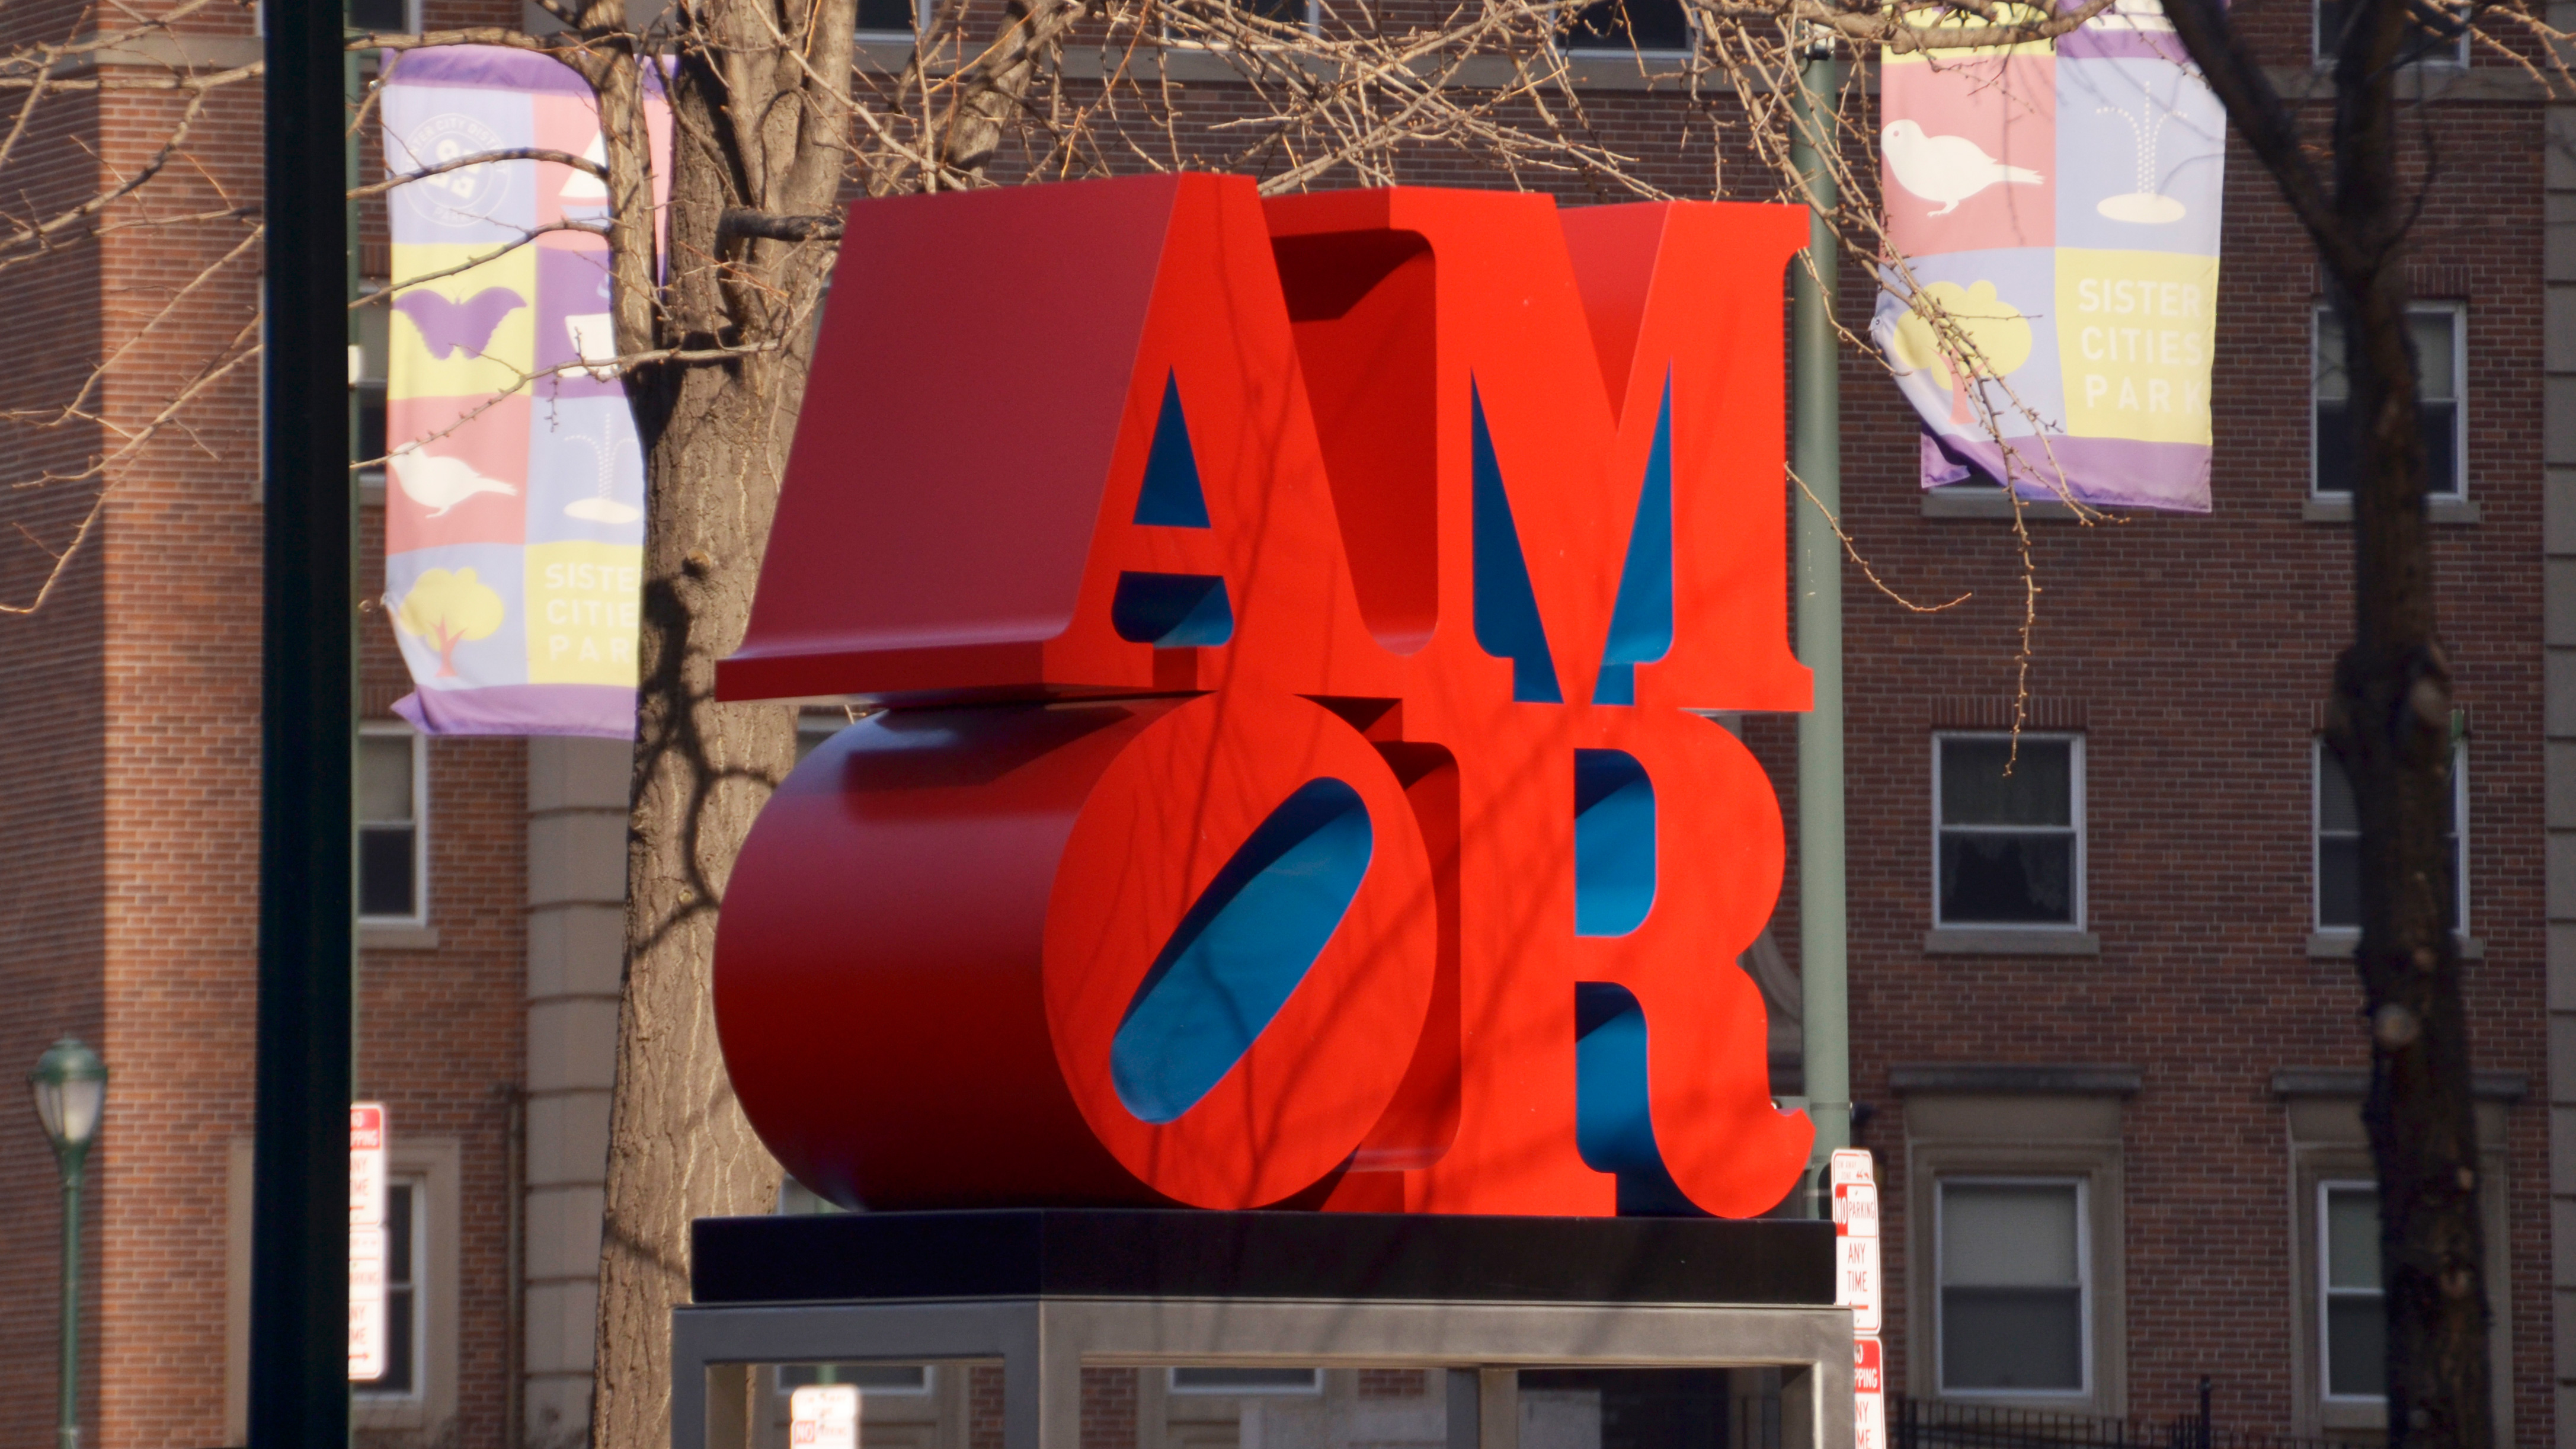 Robert Indiana's red and blue AMOR sculpture in Philadelphia